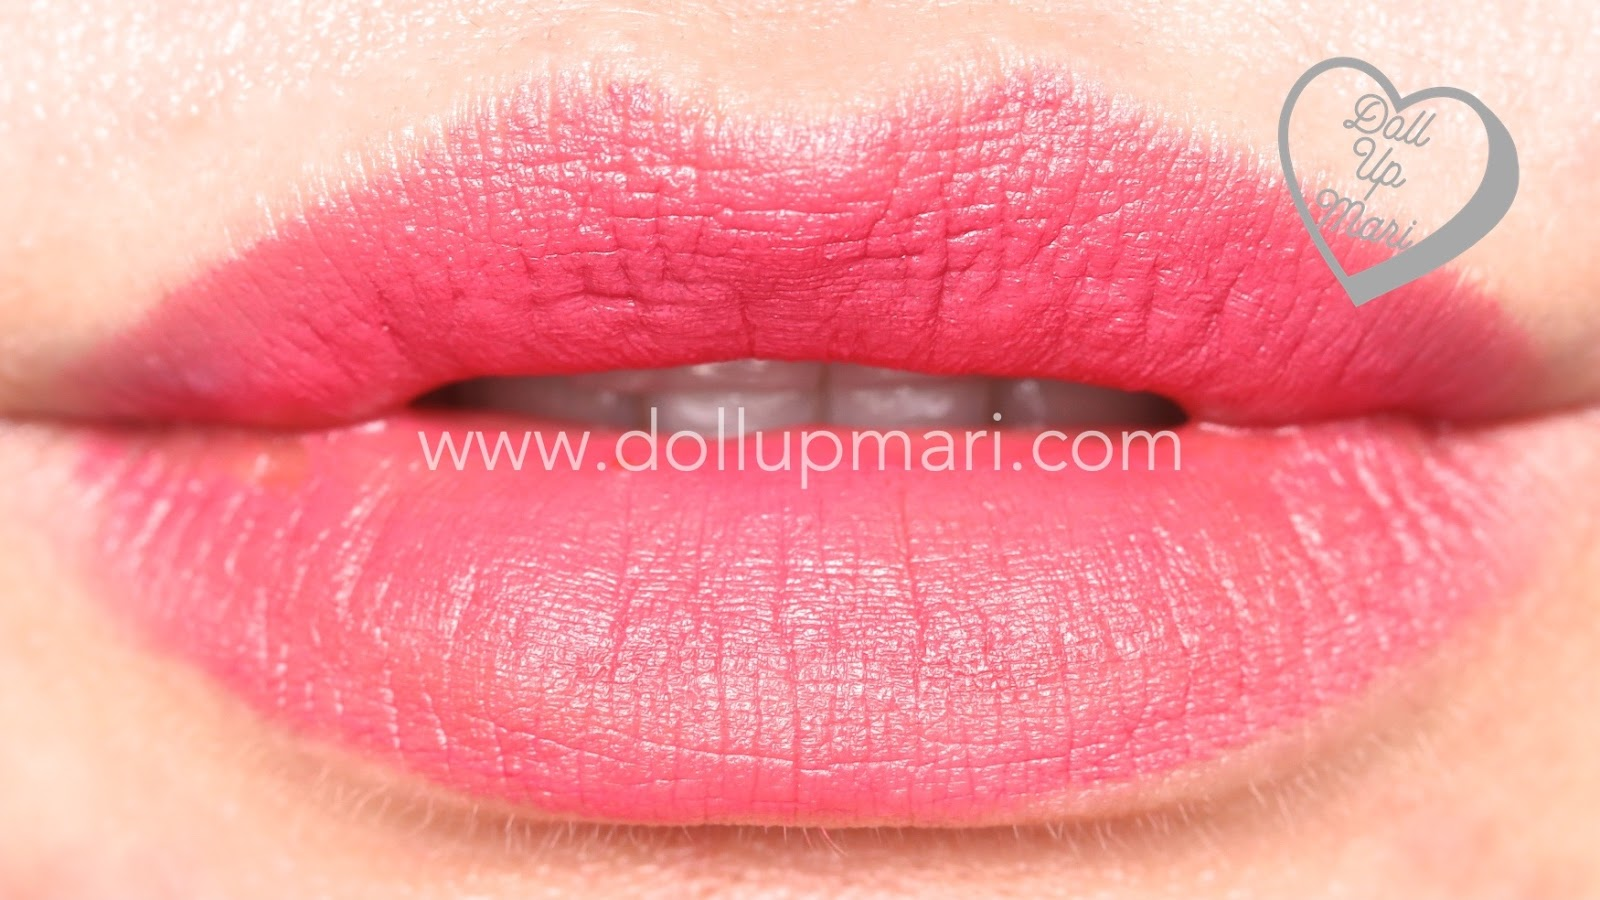 Lip Swatch of Mauve Matters shade of AVON Perfectly Matte Lipstick